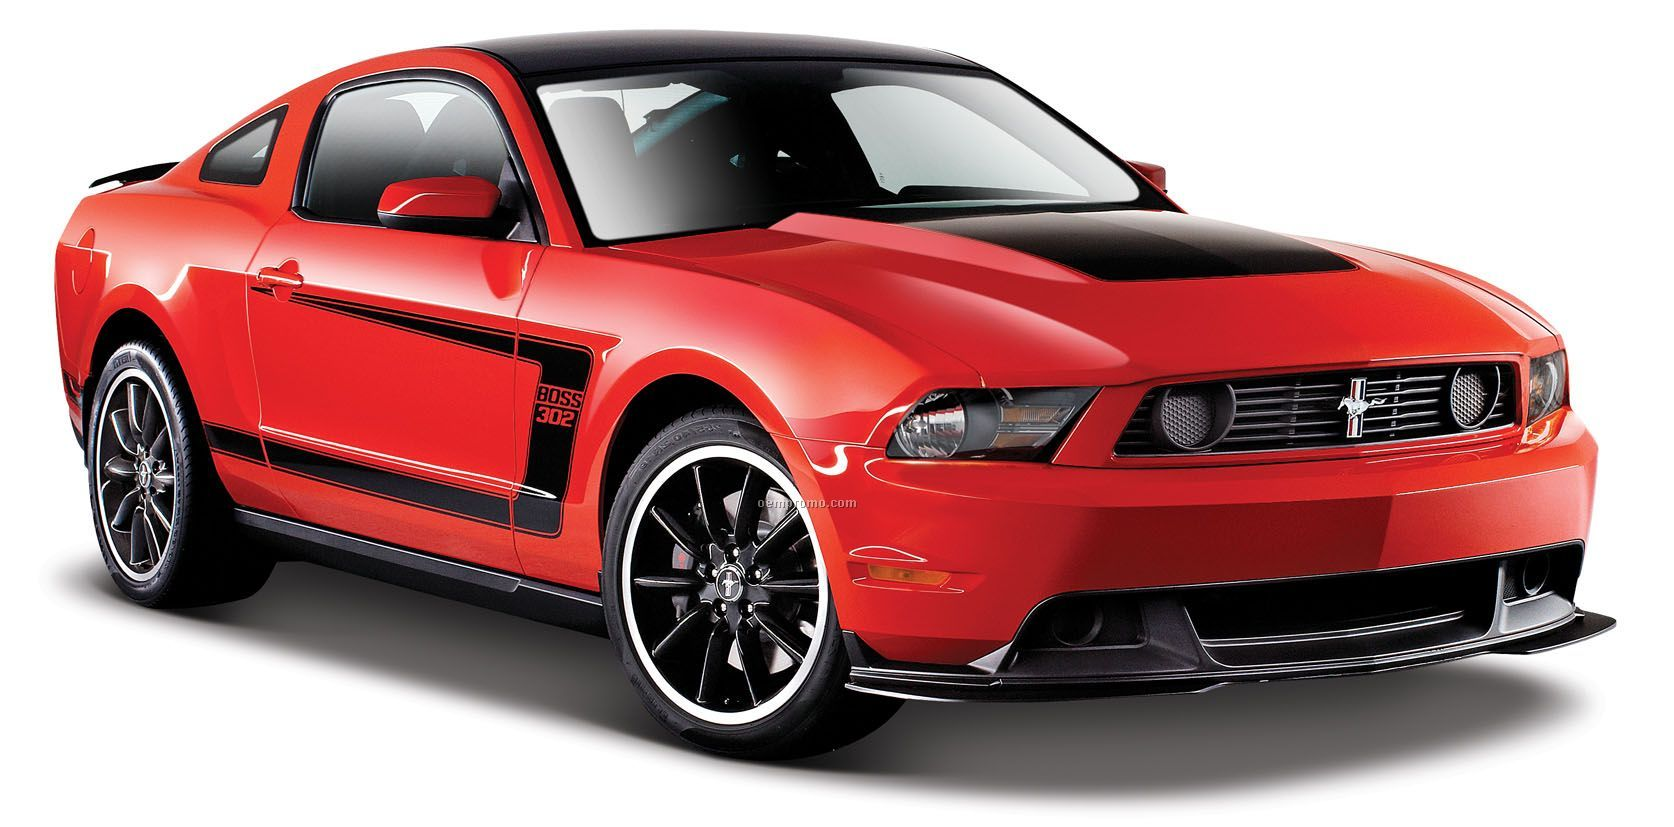 "7""X2-1/2""X3"" Ford Mustang Boss 302 Die Cast Replica Sports Car"